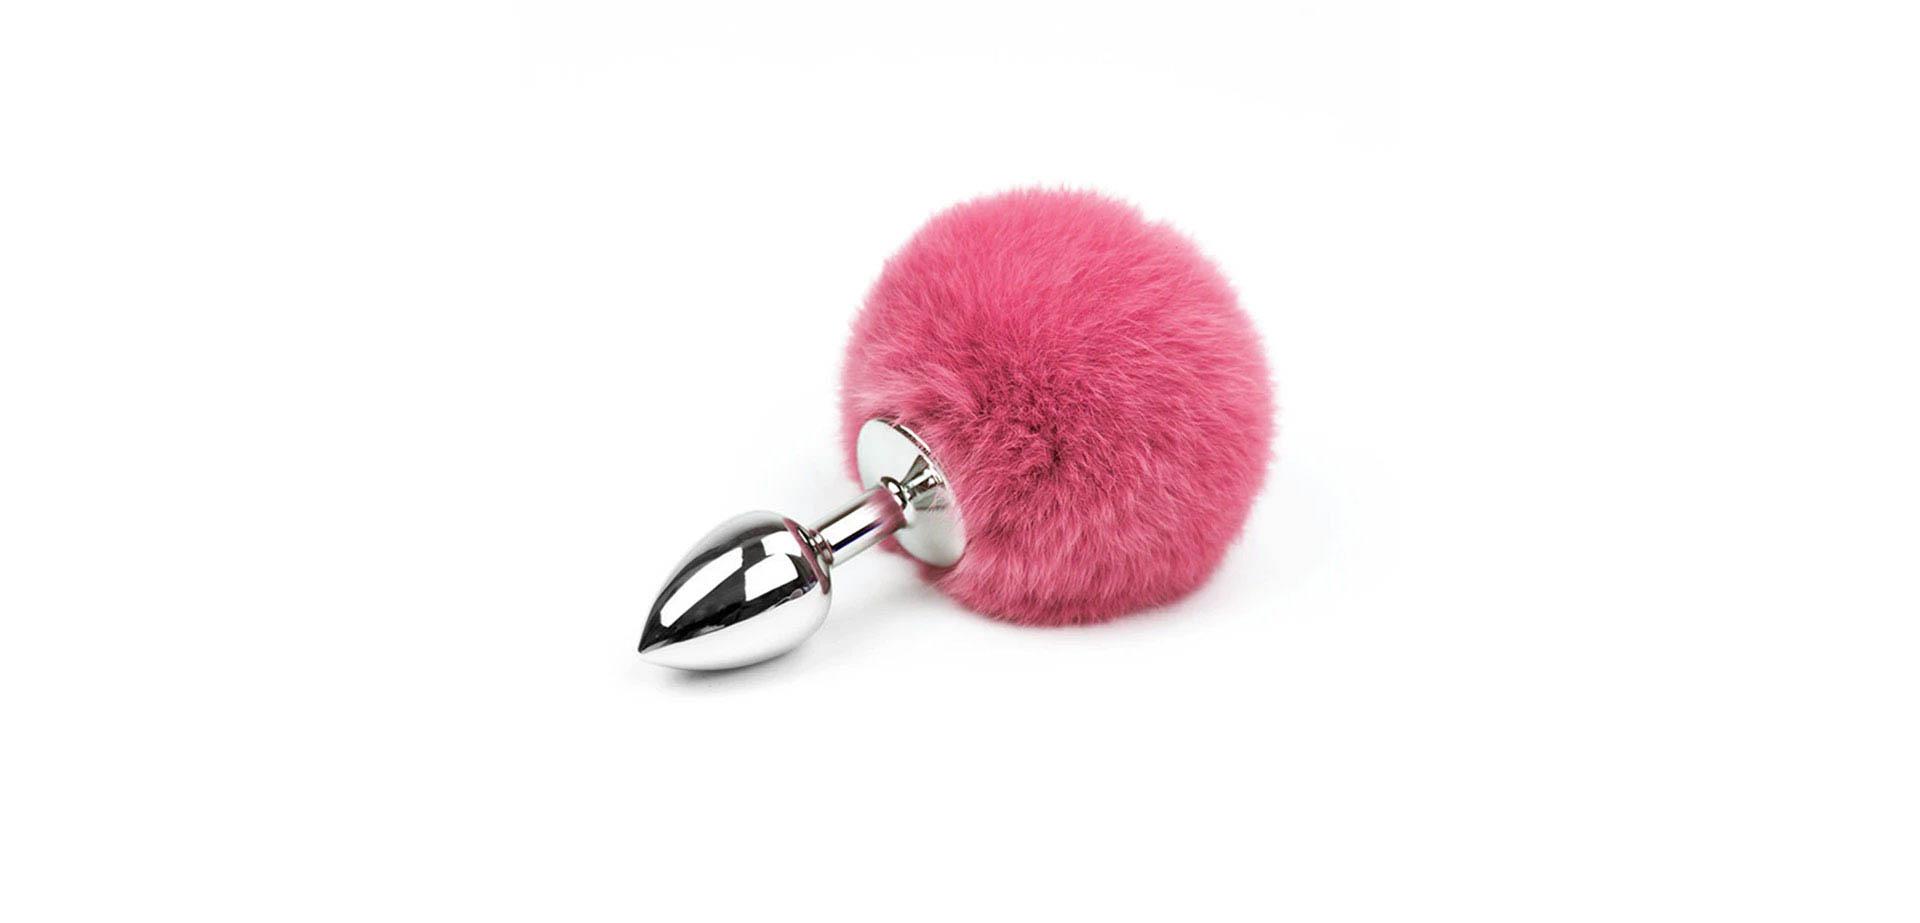 Pink Bunny Tail Butt Plug.